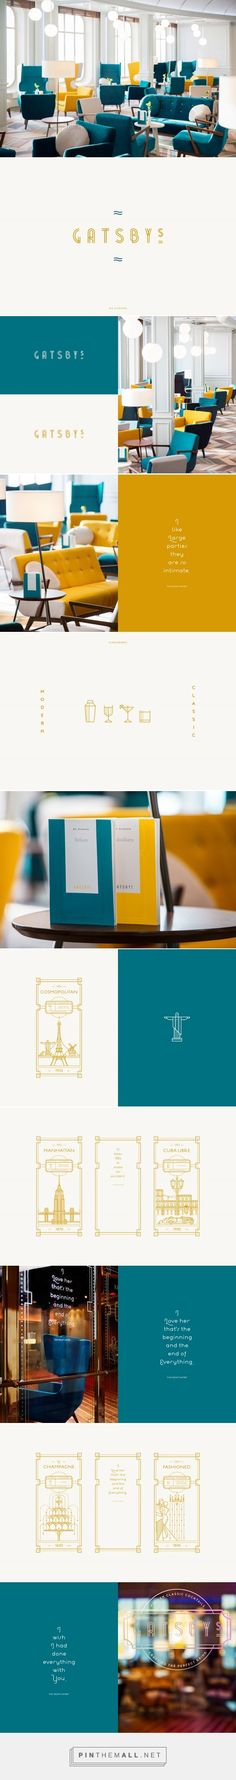 GATSBY°S Restaurant Branding by Studio Chapeaux  | Fivestar Branding Agency – Design and Branding Agency & Curated Inspiration Gallery